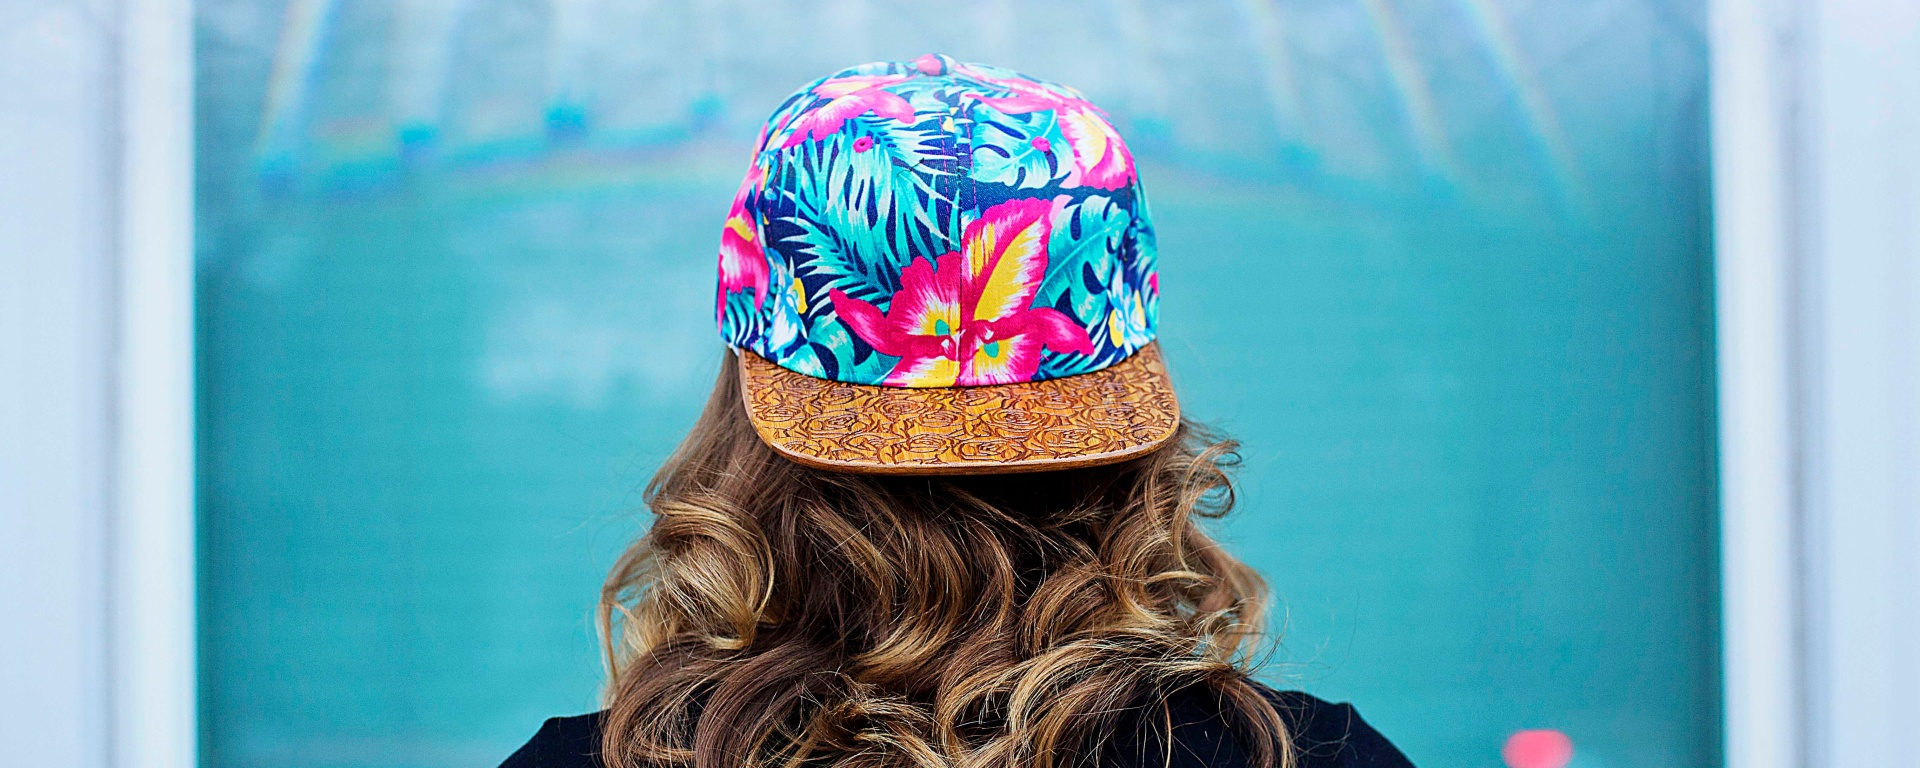 pic of neon printed hat